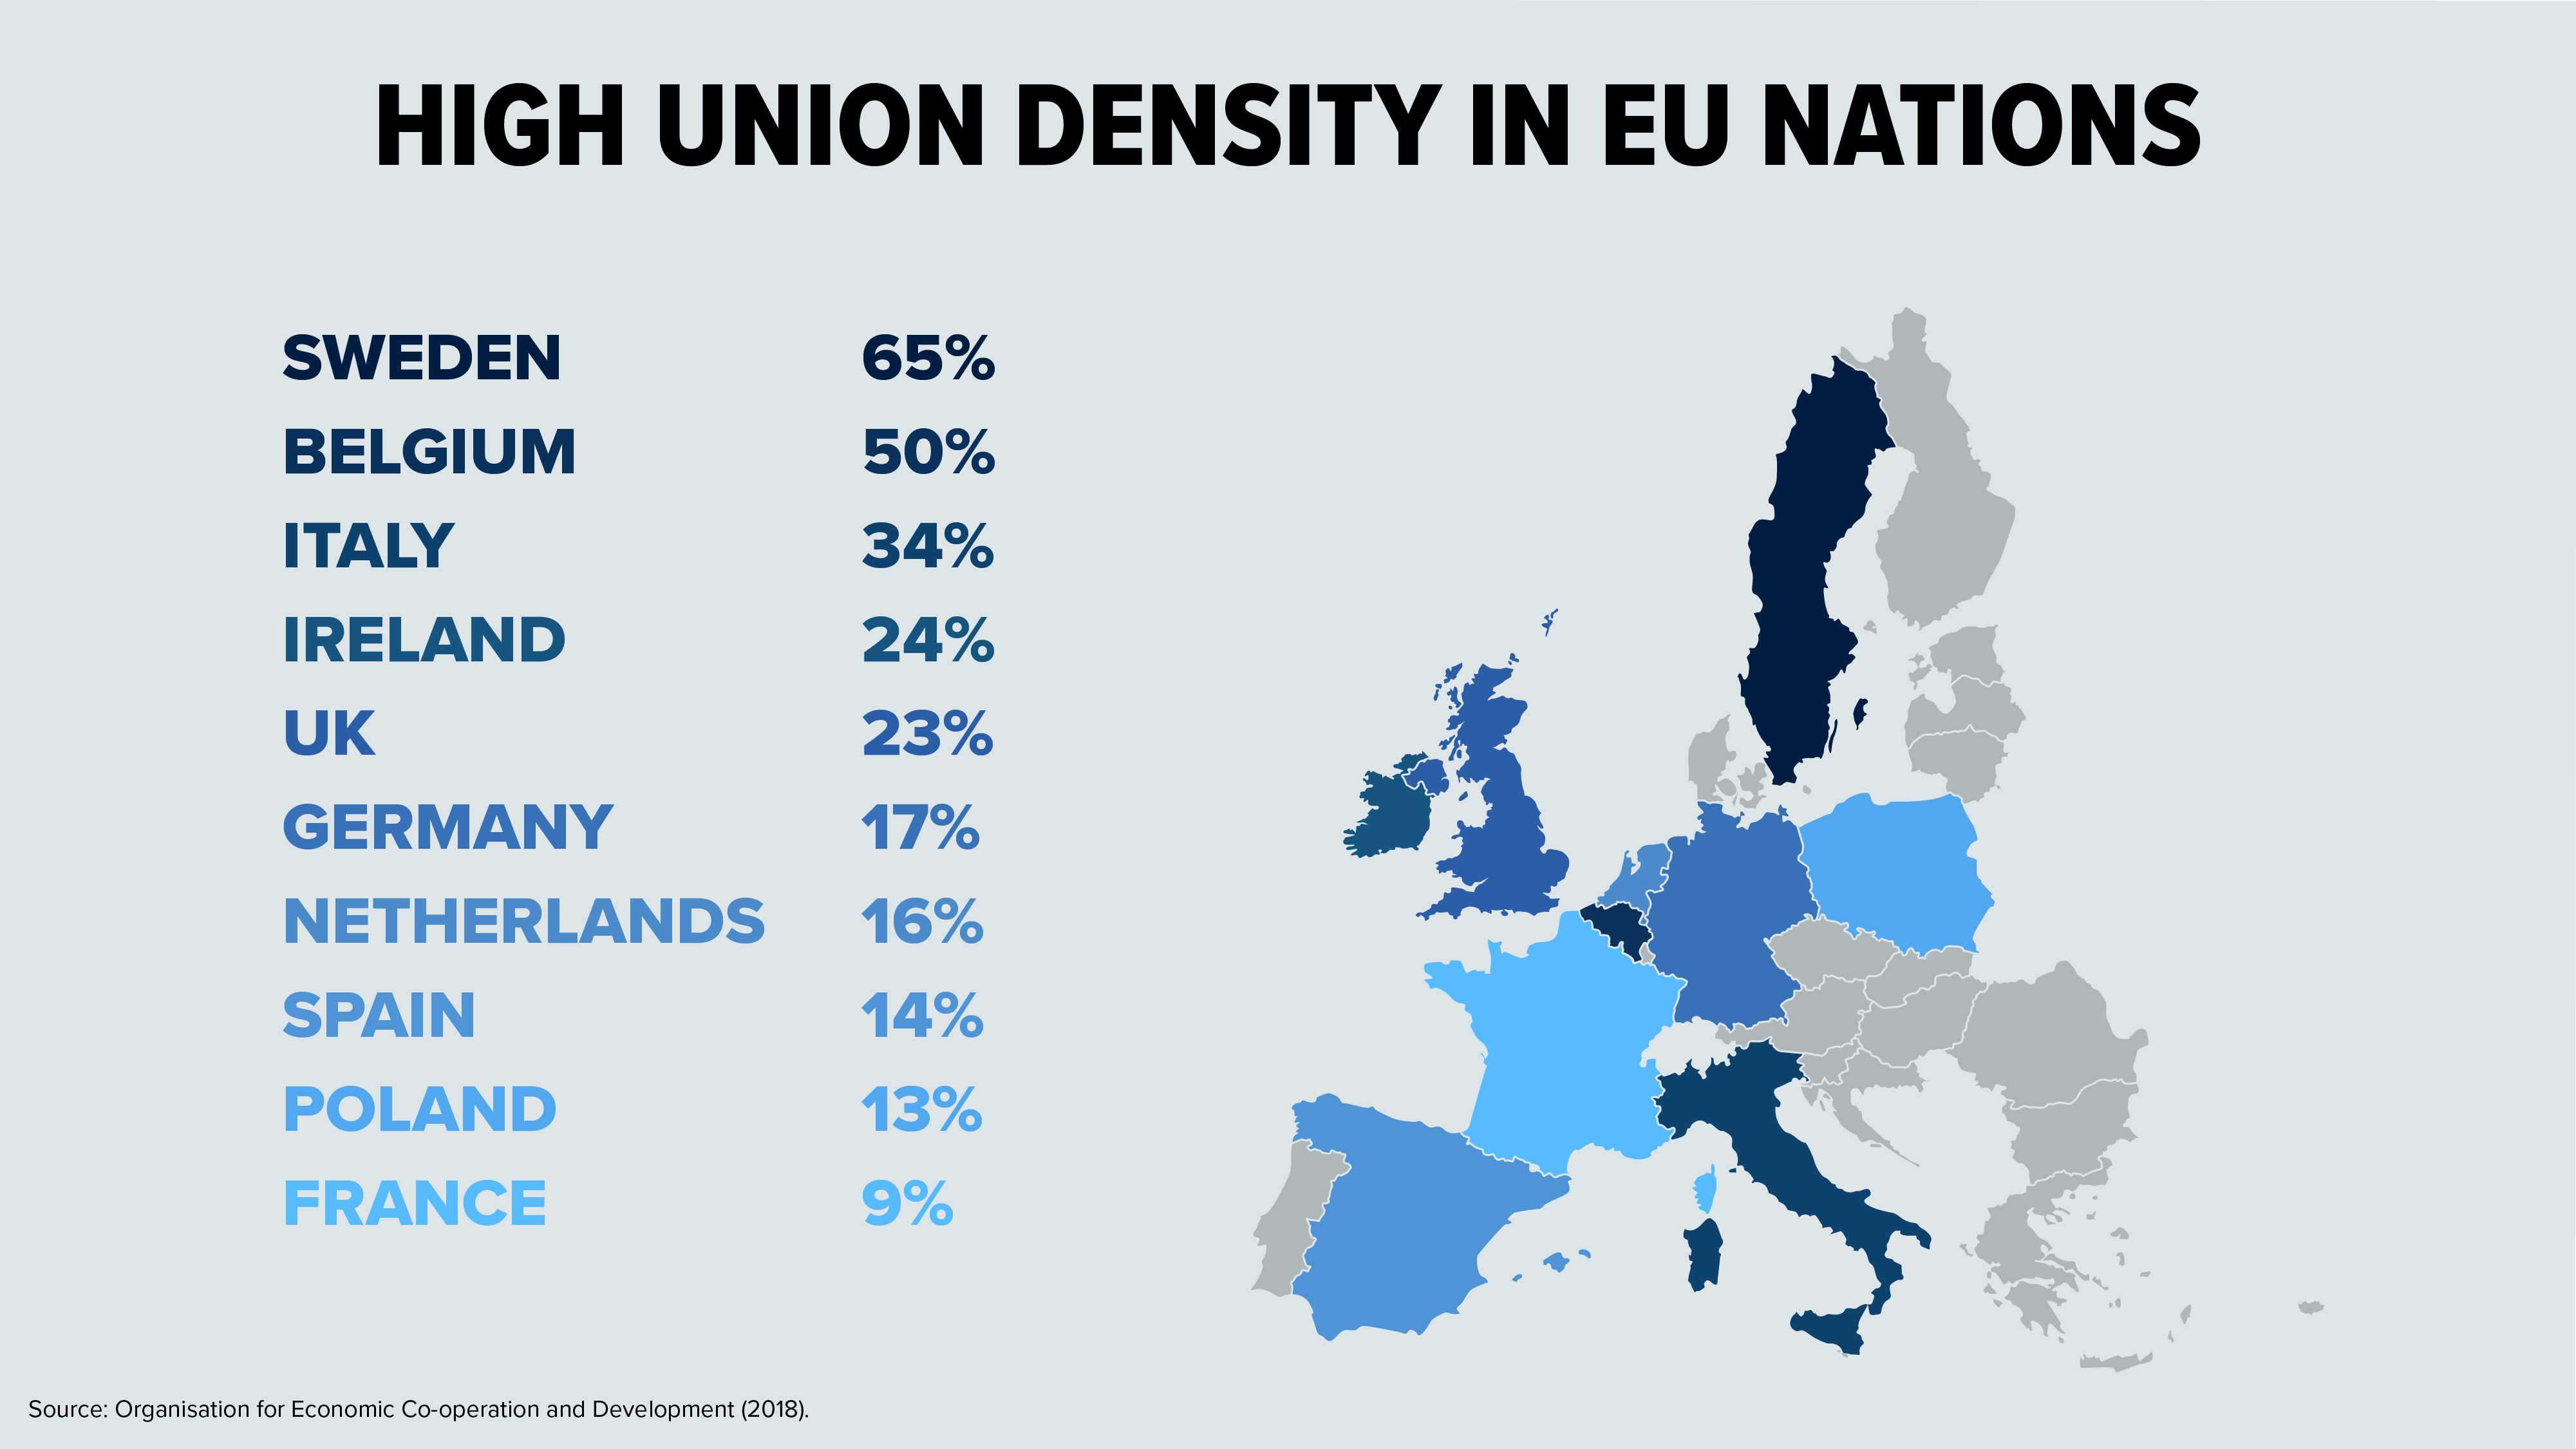 High Union Density in EU Nations